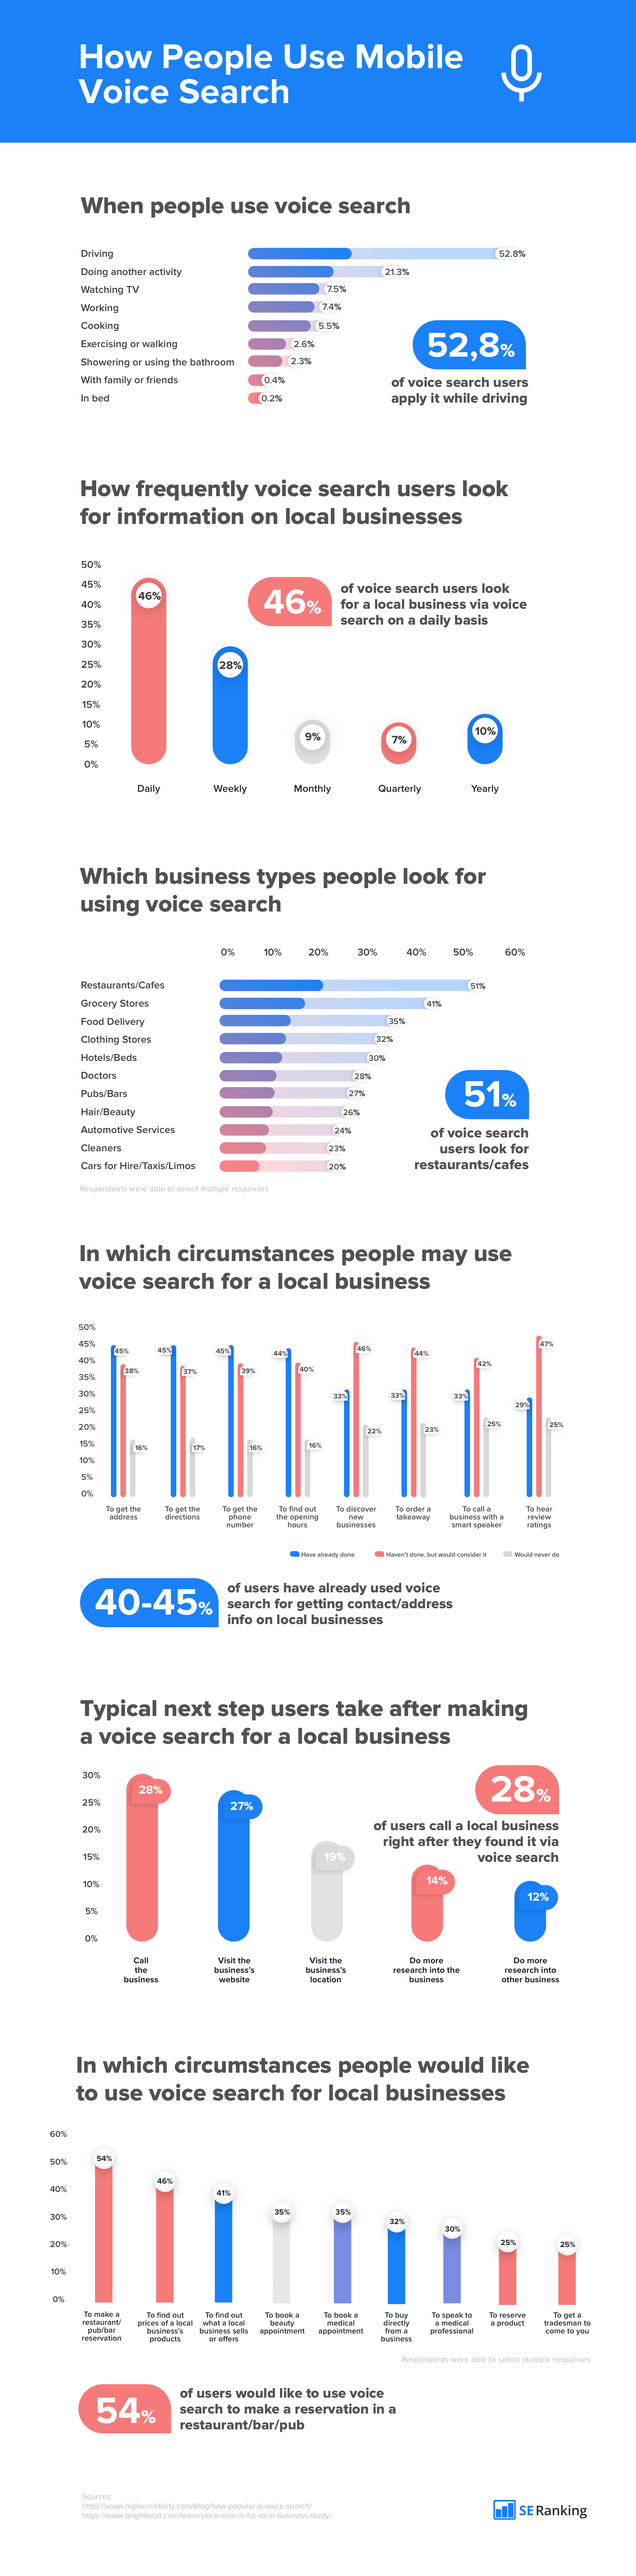 How-people-use-mobile-voice-search-infographic-plaza